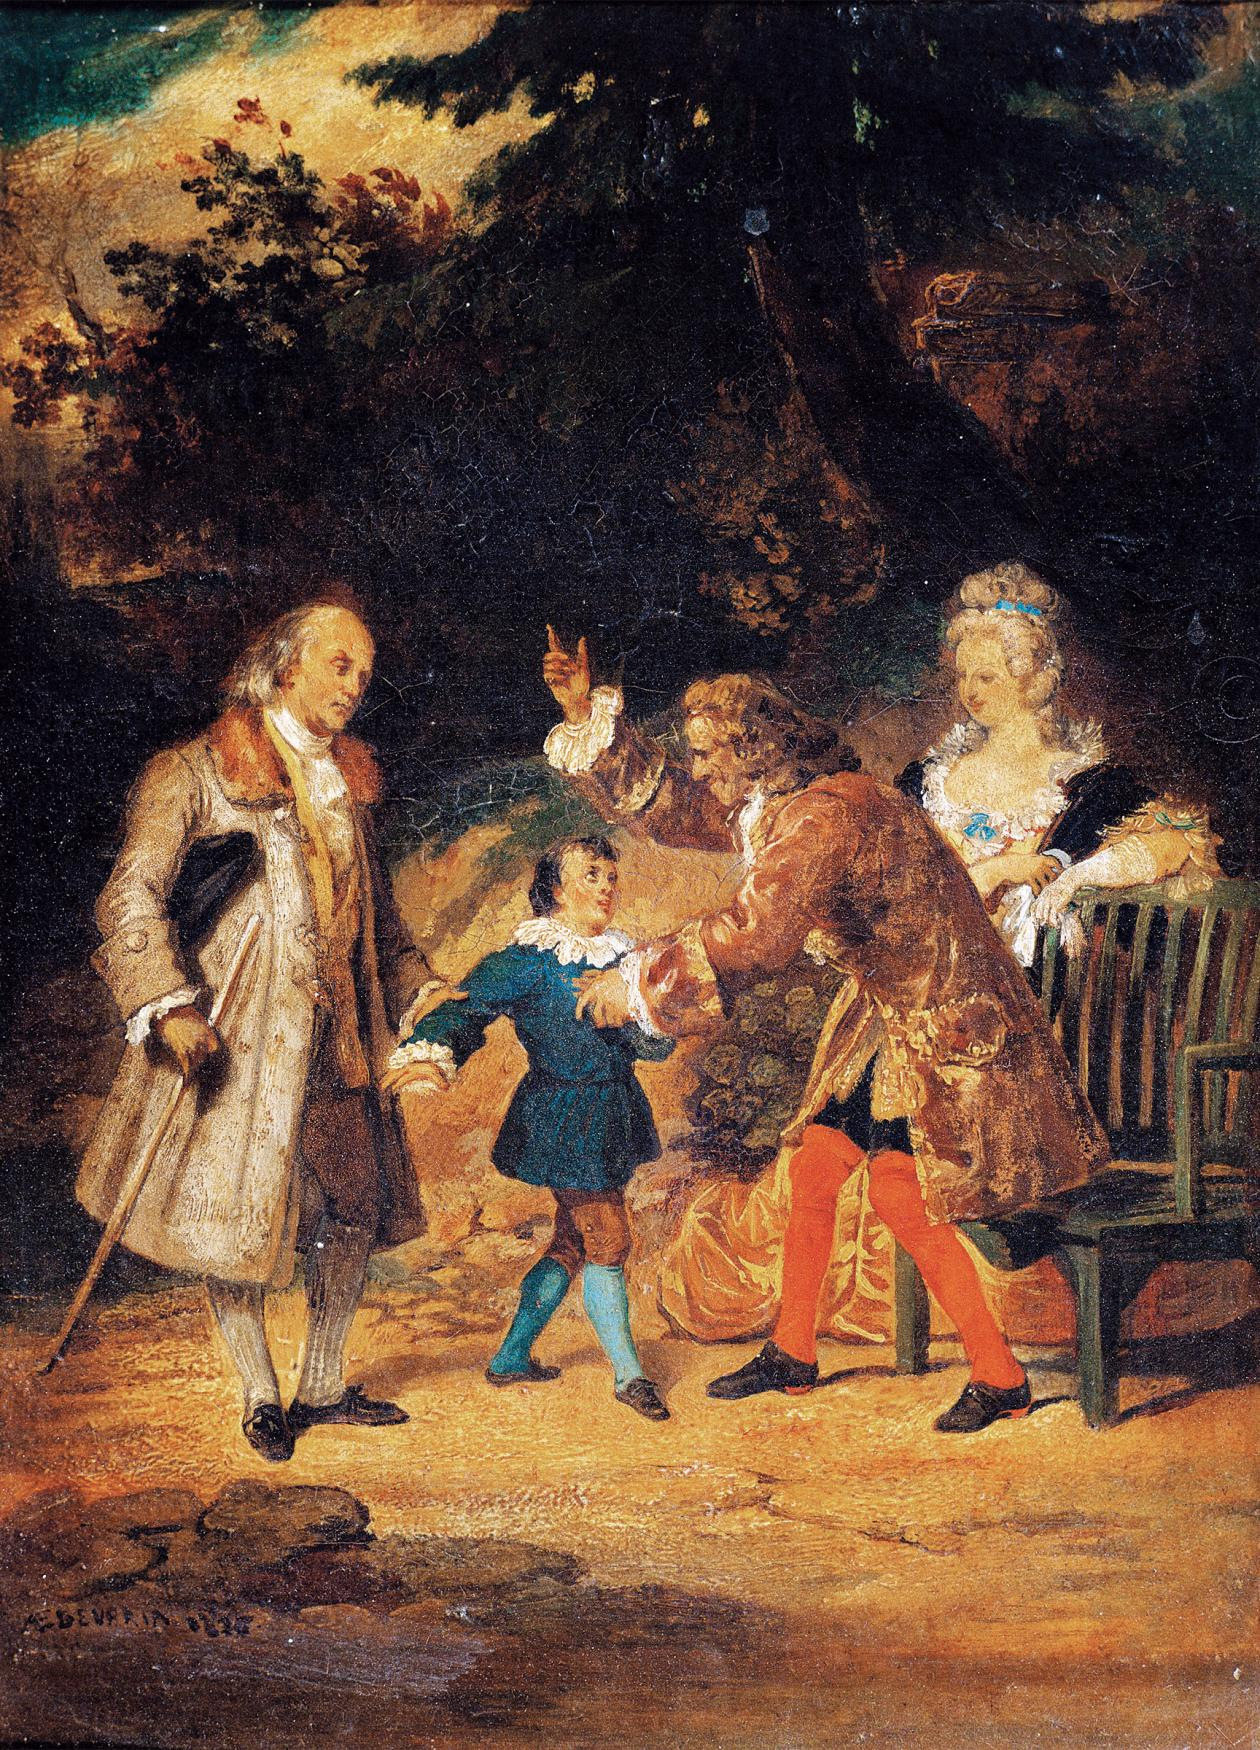 Oil painting of boy meeting three people